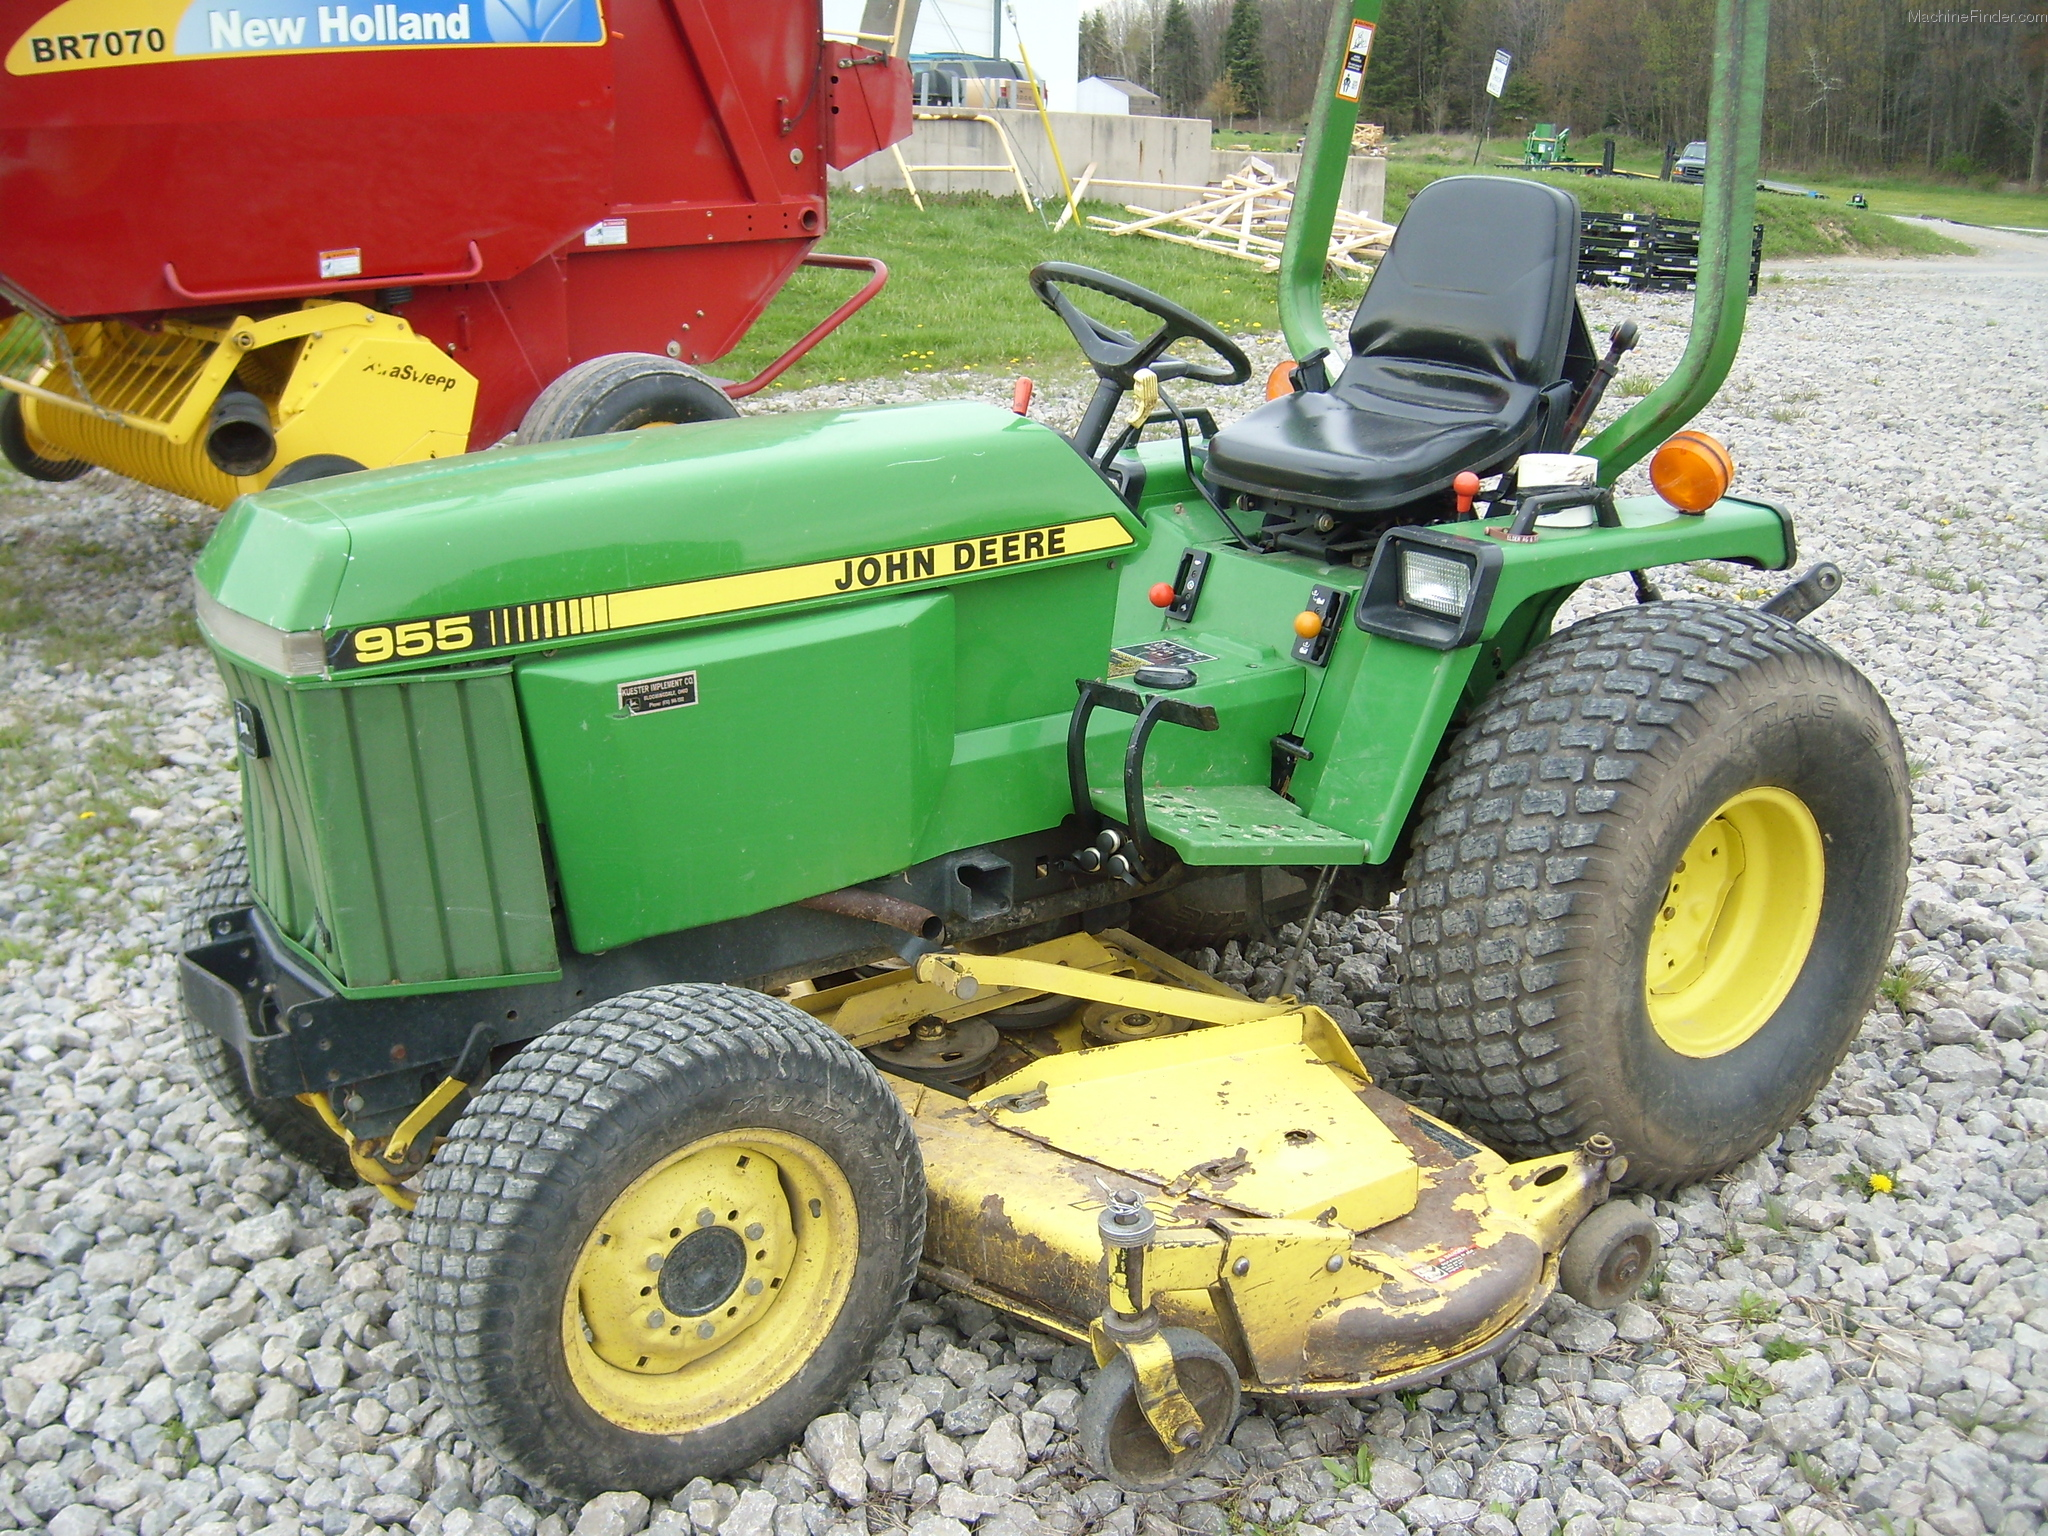 John deere 955 tiller john deere tillers john deere tillers www john deere tractor manual technical data and information fandeluxe Image collections